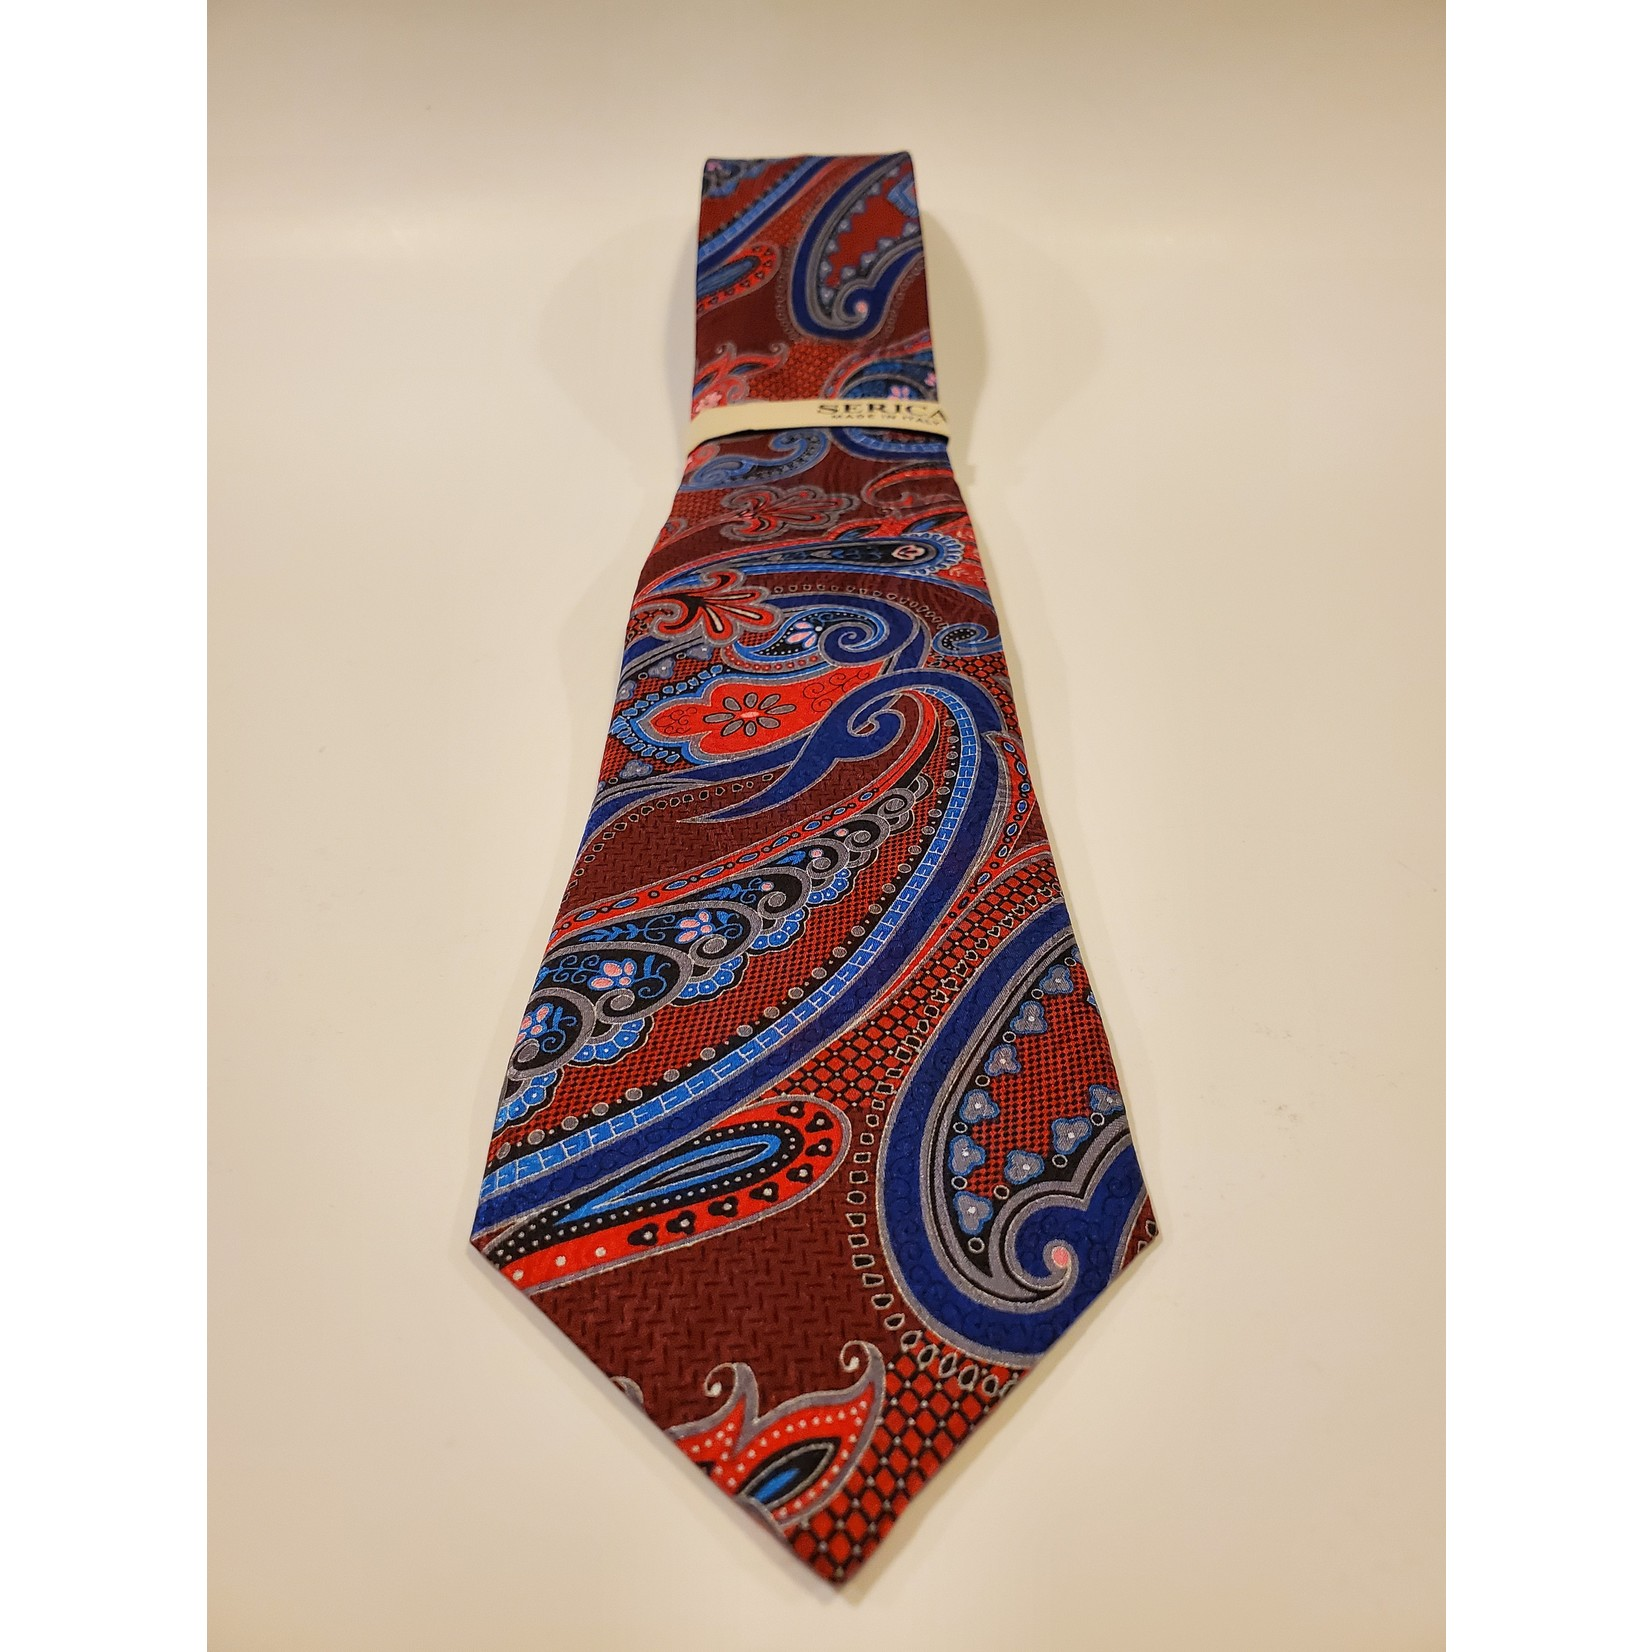 Serica 203218 Printed Silk Tie A - Large Red Paisley